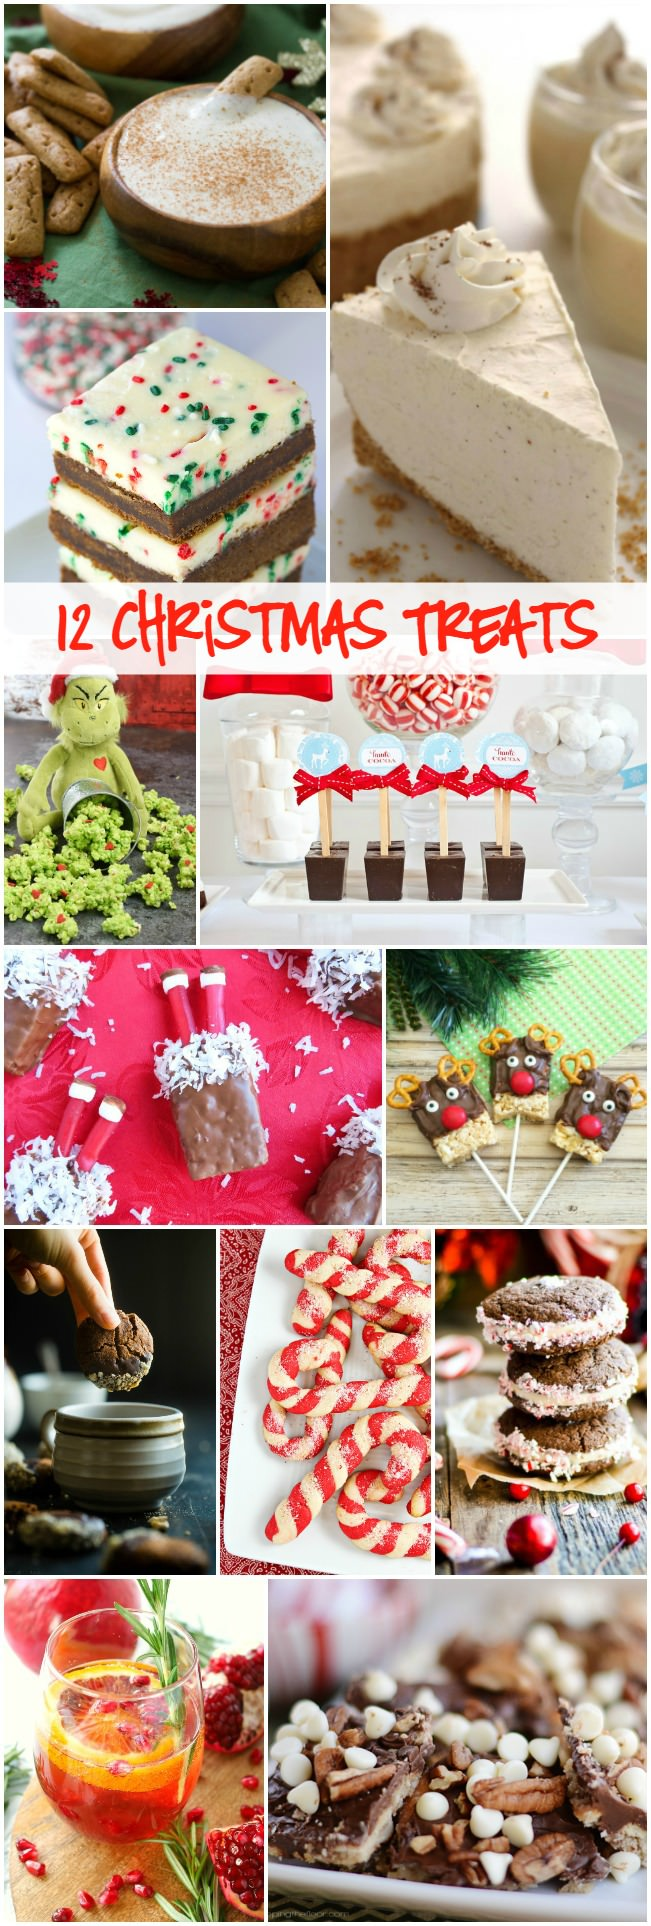 12 Christmas Treats that are perfect for the kids and adults to enjoy!